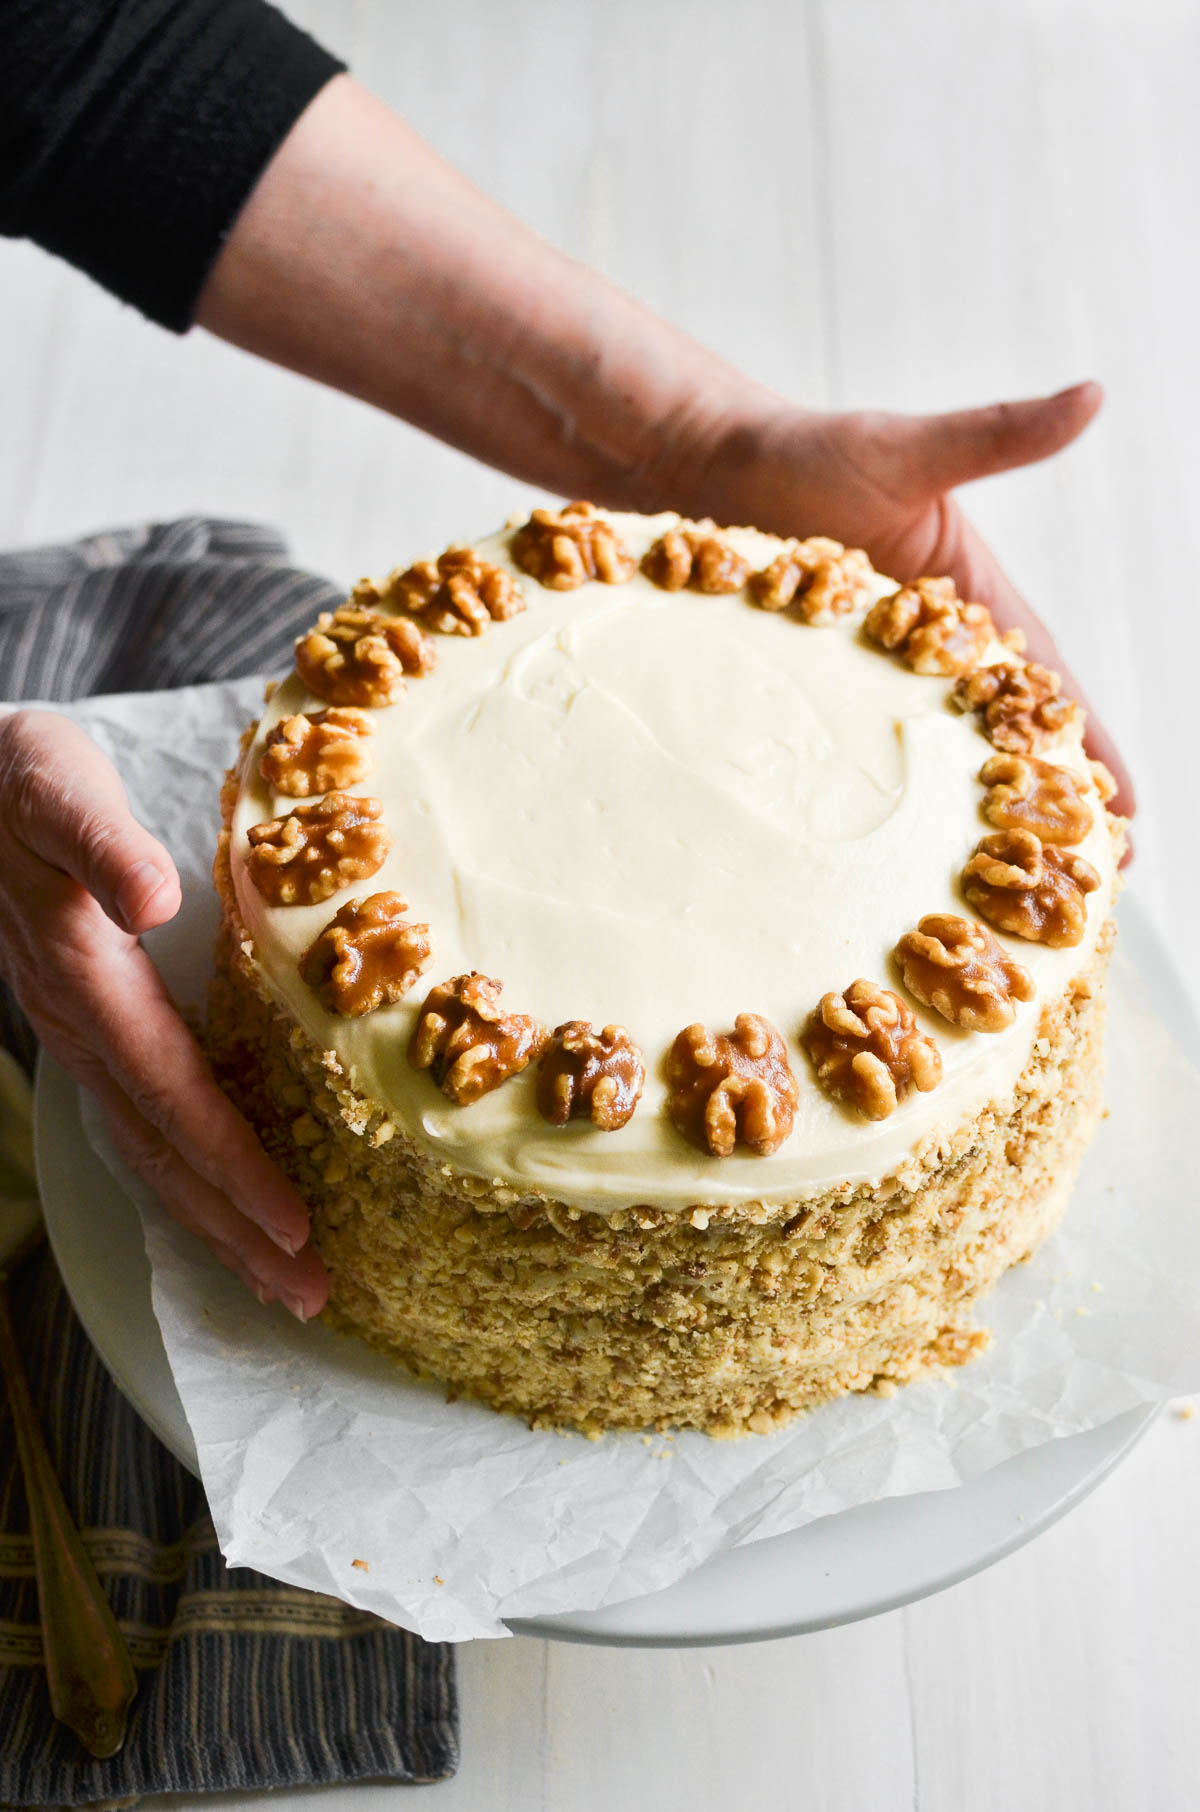 a maple walnut cake topped with candied walnuts